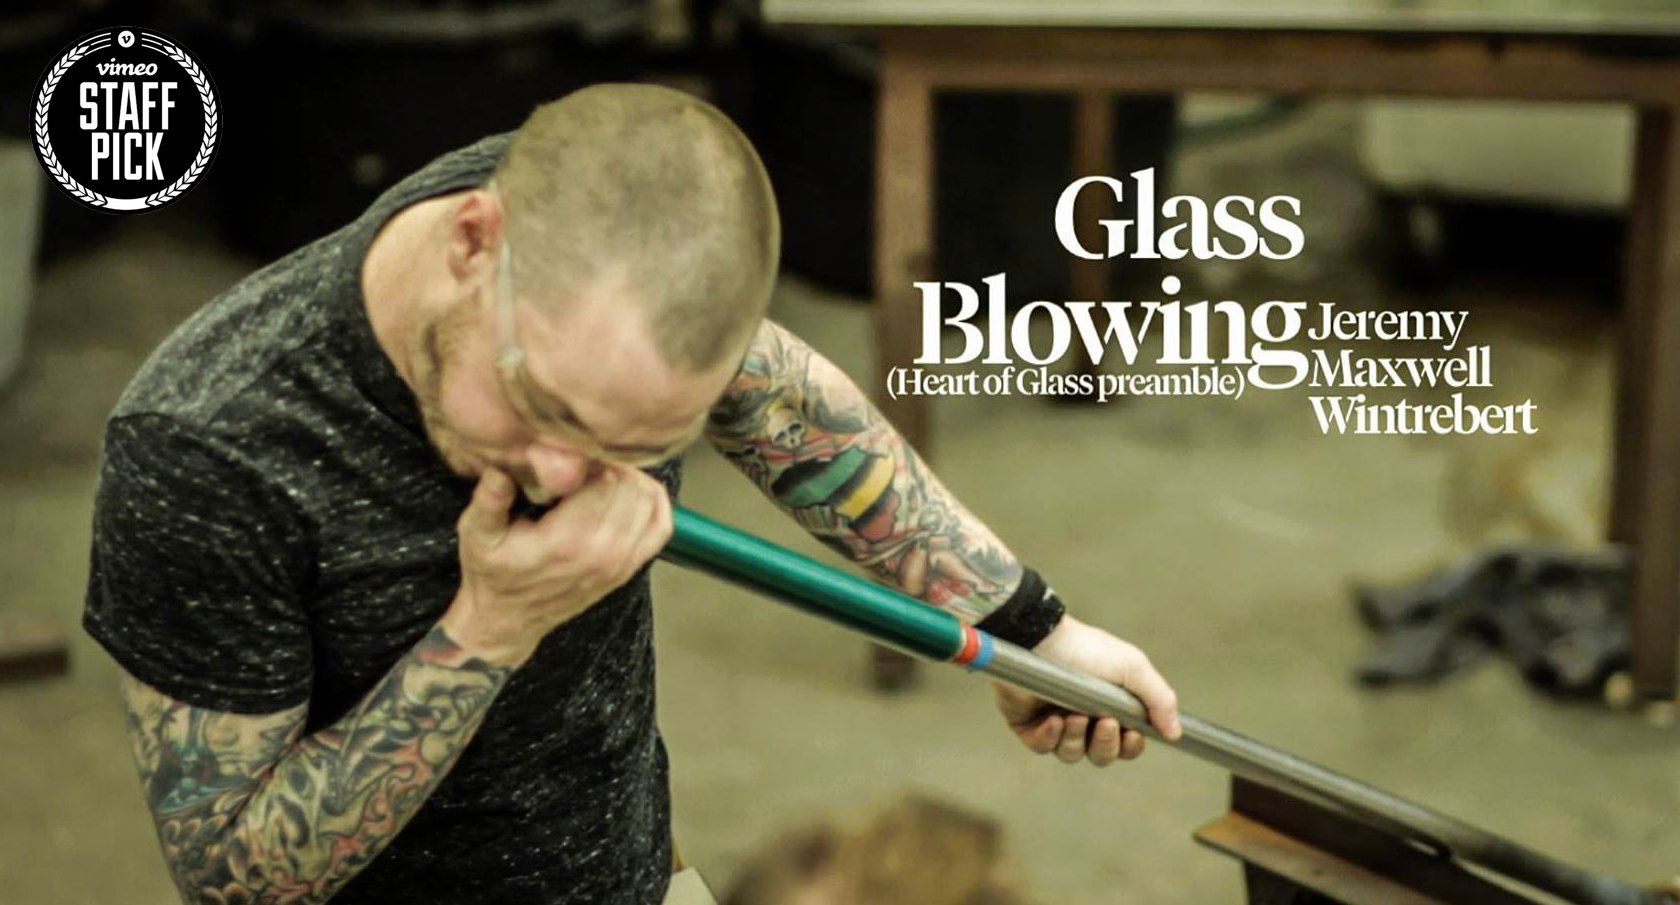 Glass Blowing | Jeremy Maxwell Wintrebert  (Heart of Glass Documentary preamble)